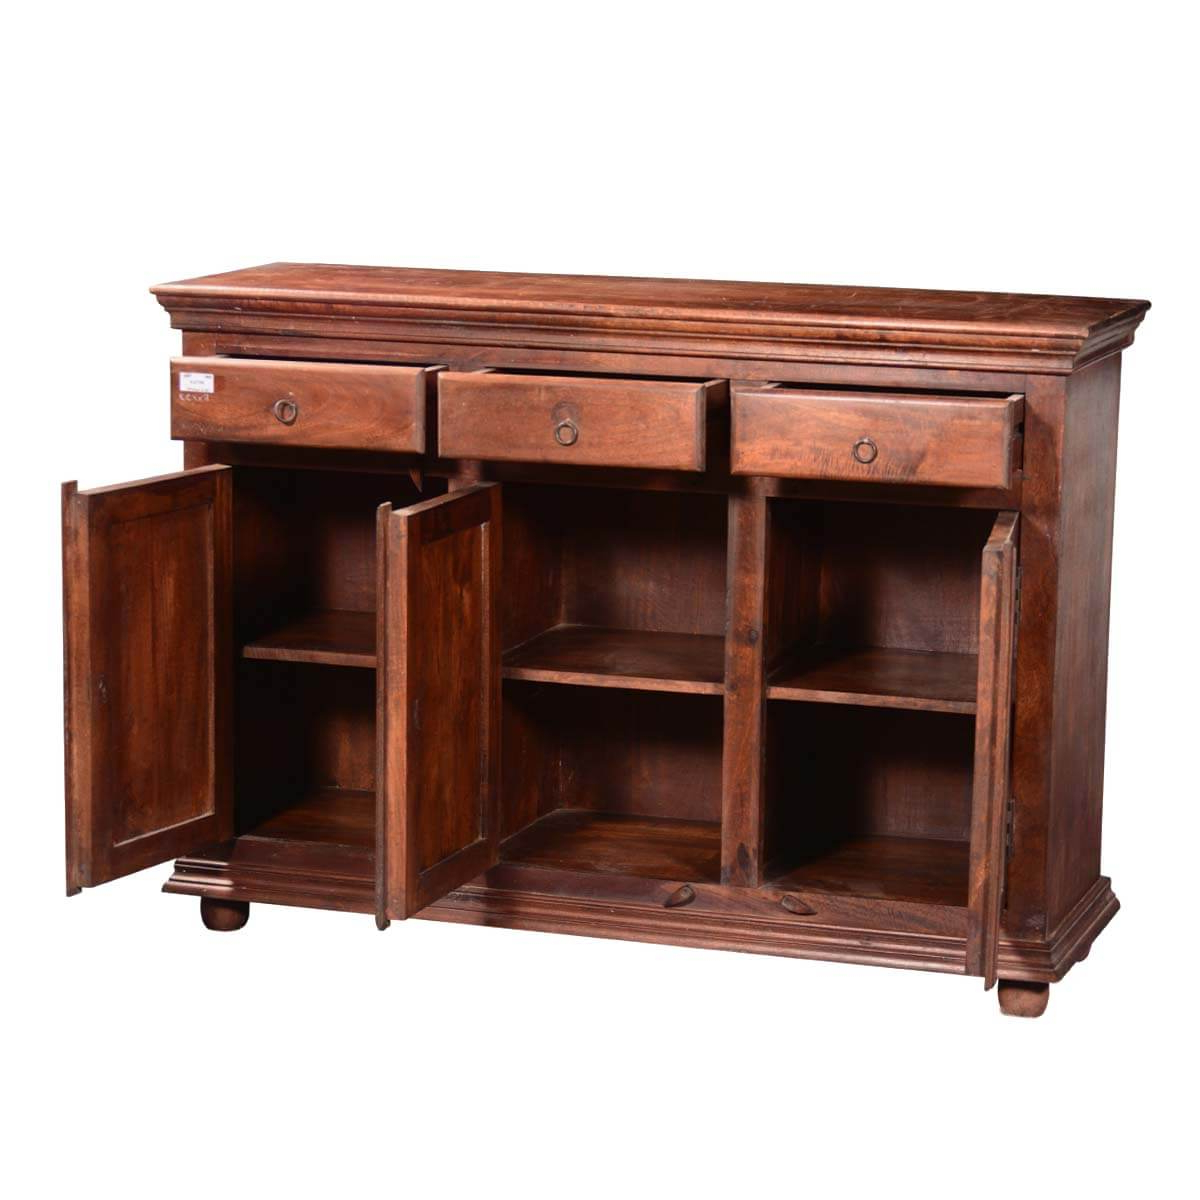 2019 Orner Traditional Wood Sideboards Throughout Traditional Sunburst Reclaimed Wood 3 Drawer Sideboard Cabinet (View 11 of 20)